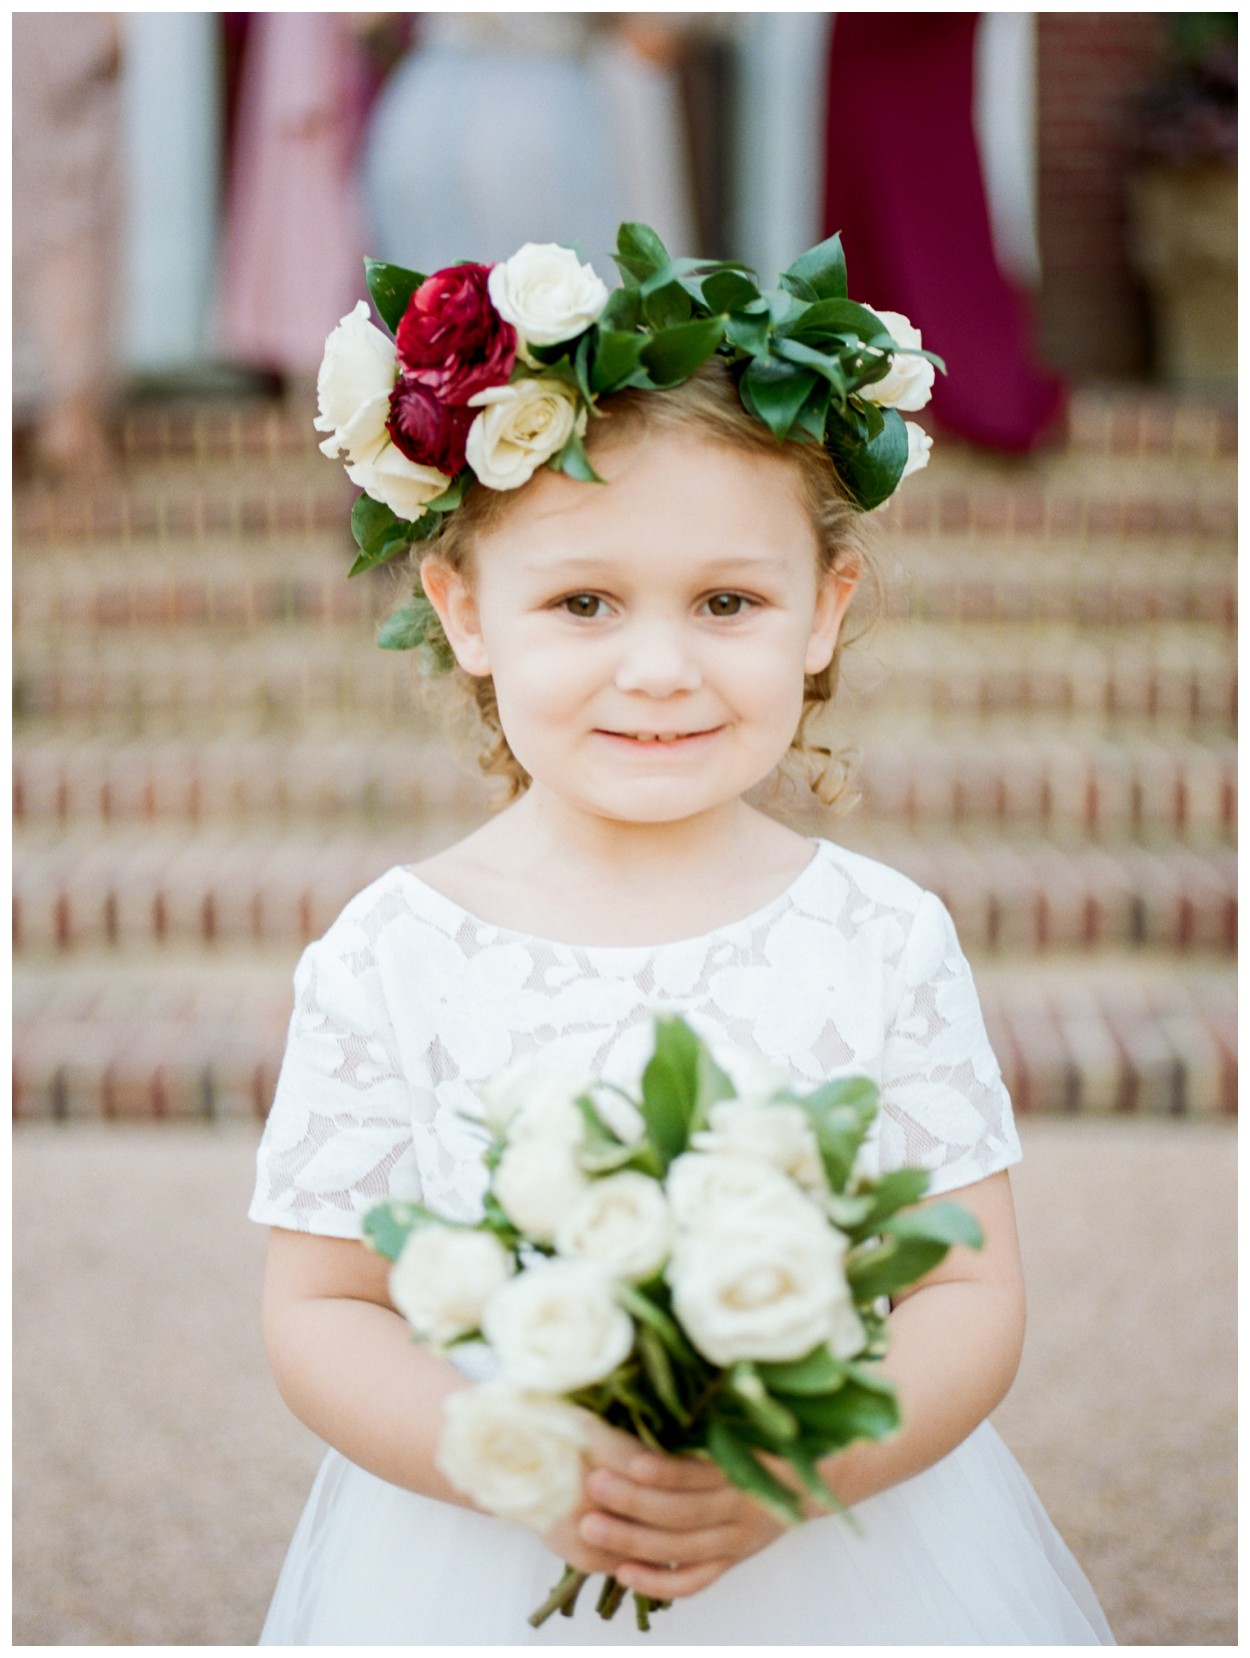 Sun drenched fall wedding in shades of pink at Oxon Hill Manor in Maryland adorable flower girl by fine art wedding photographer Lissa Ryan Photography